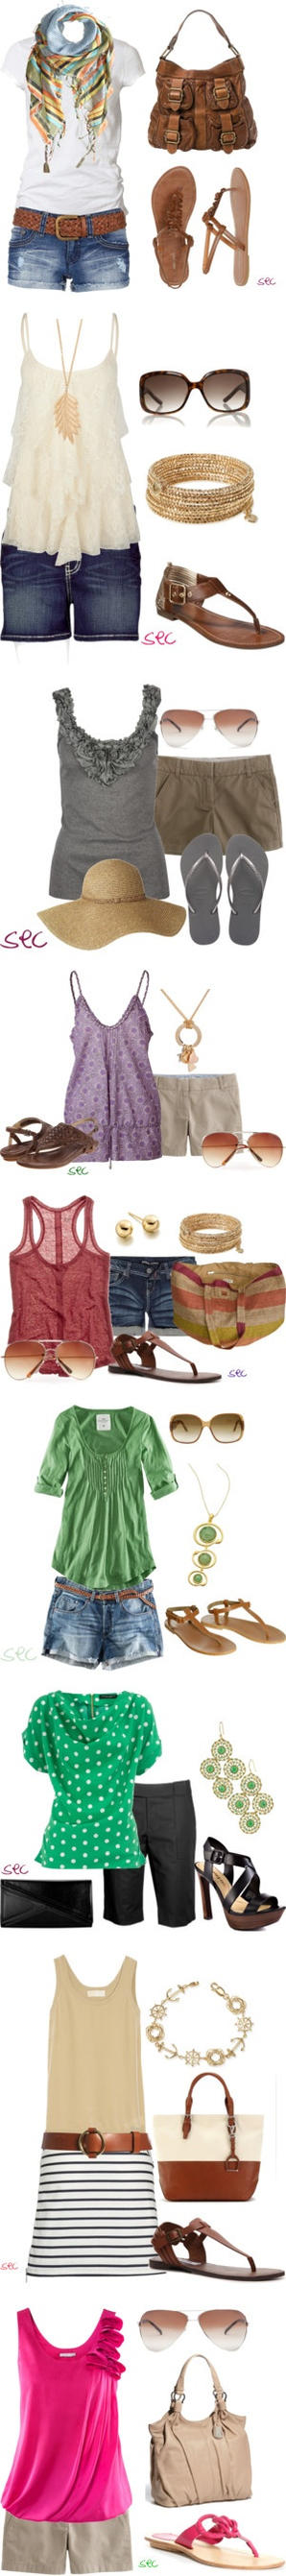 ropa   :) outfits (: by angieanella